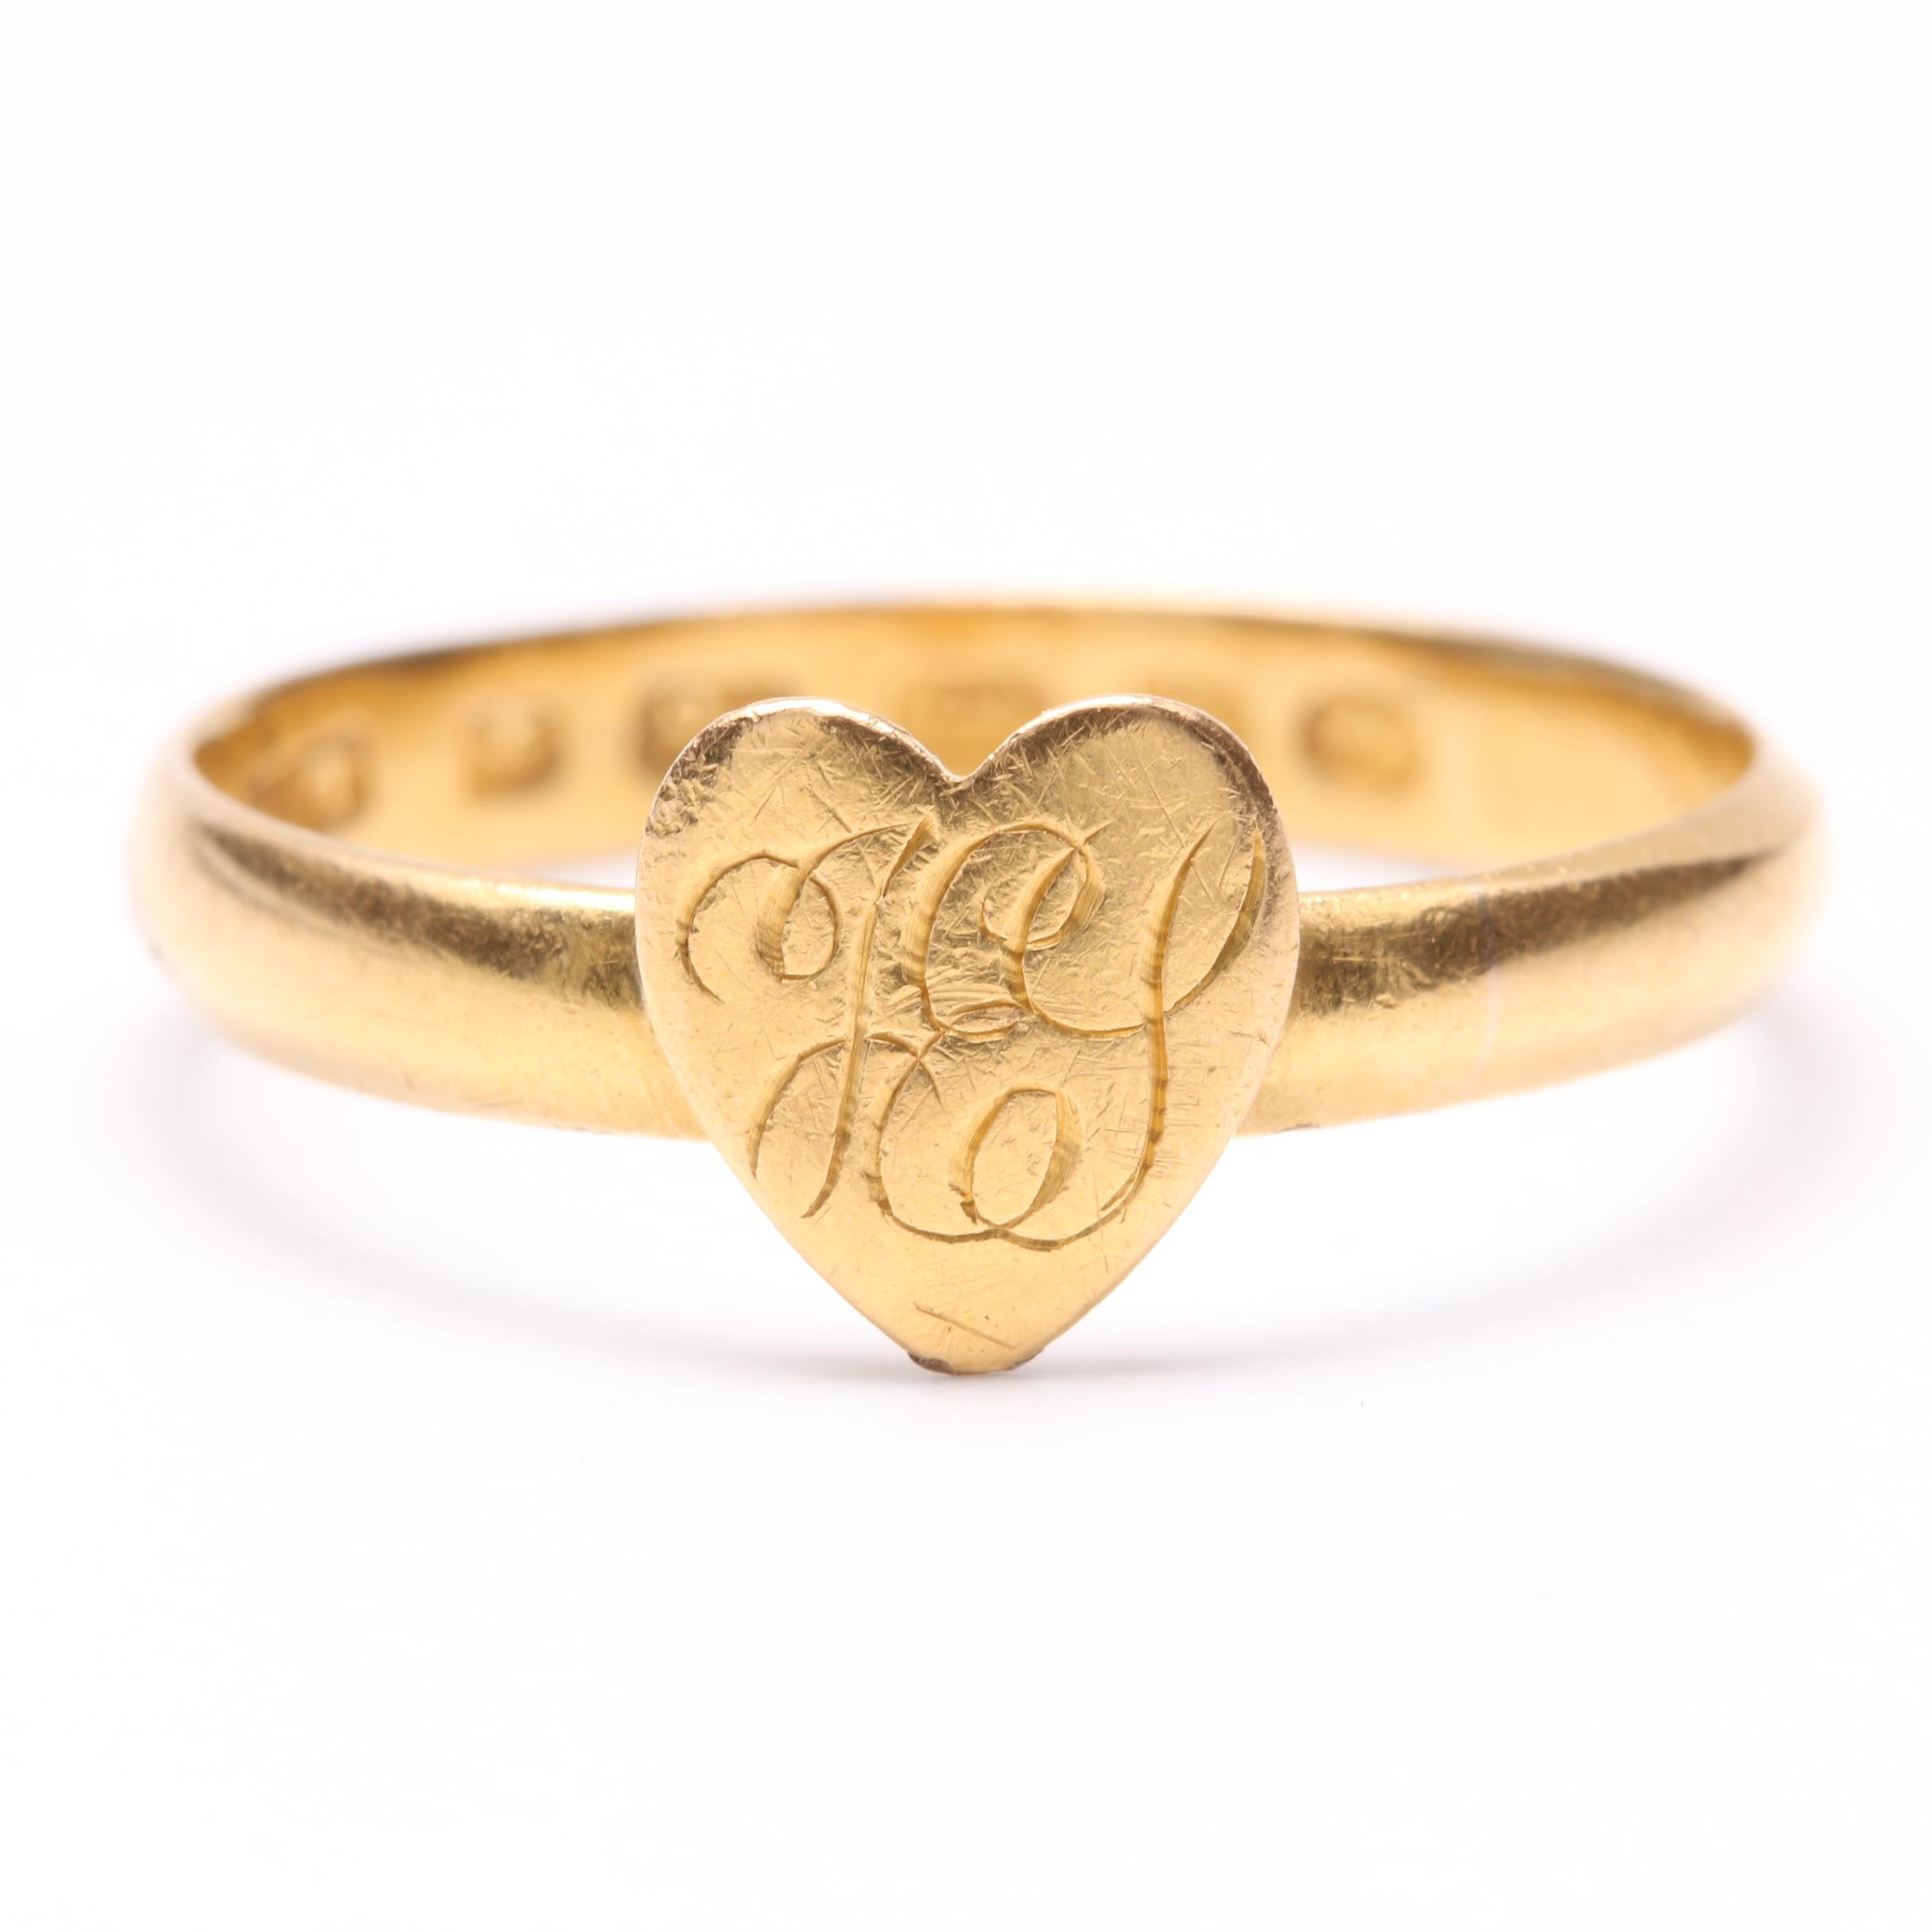 Circa 1878 18K Yellow Gold Monogrammed Heart Ring